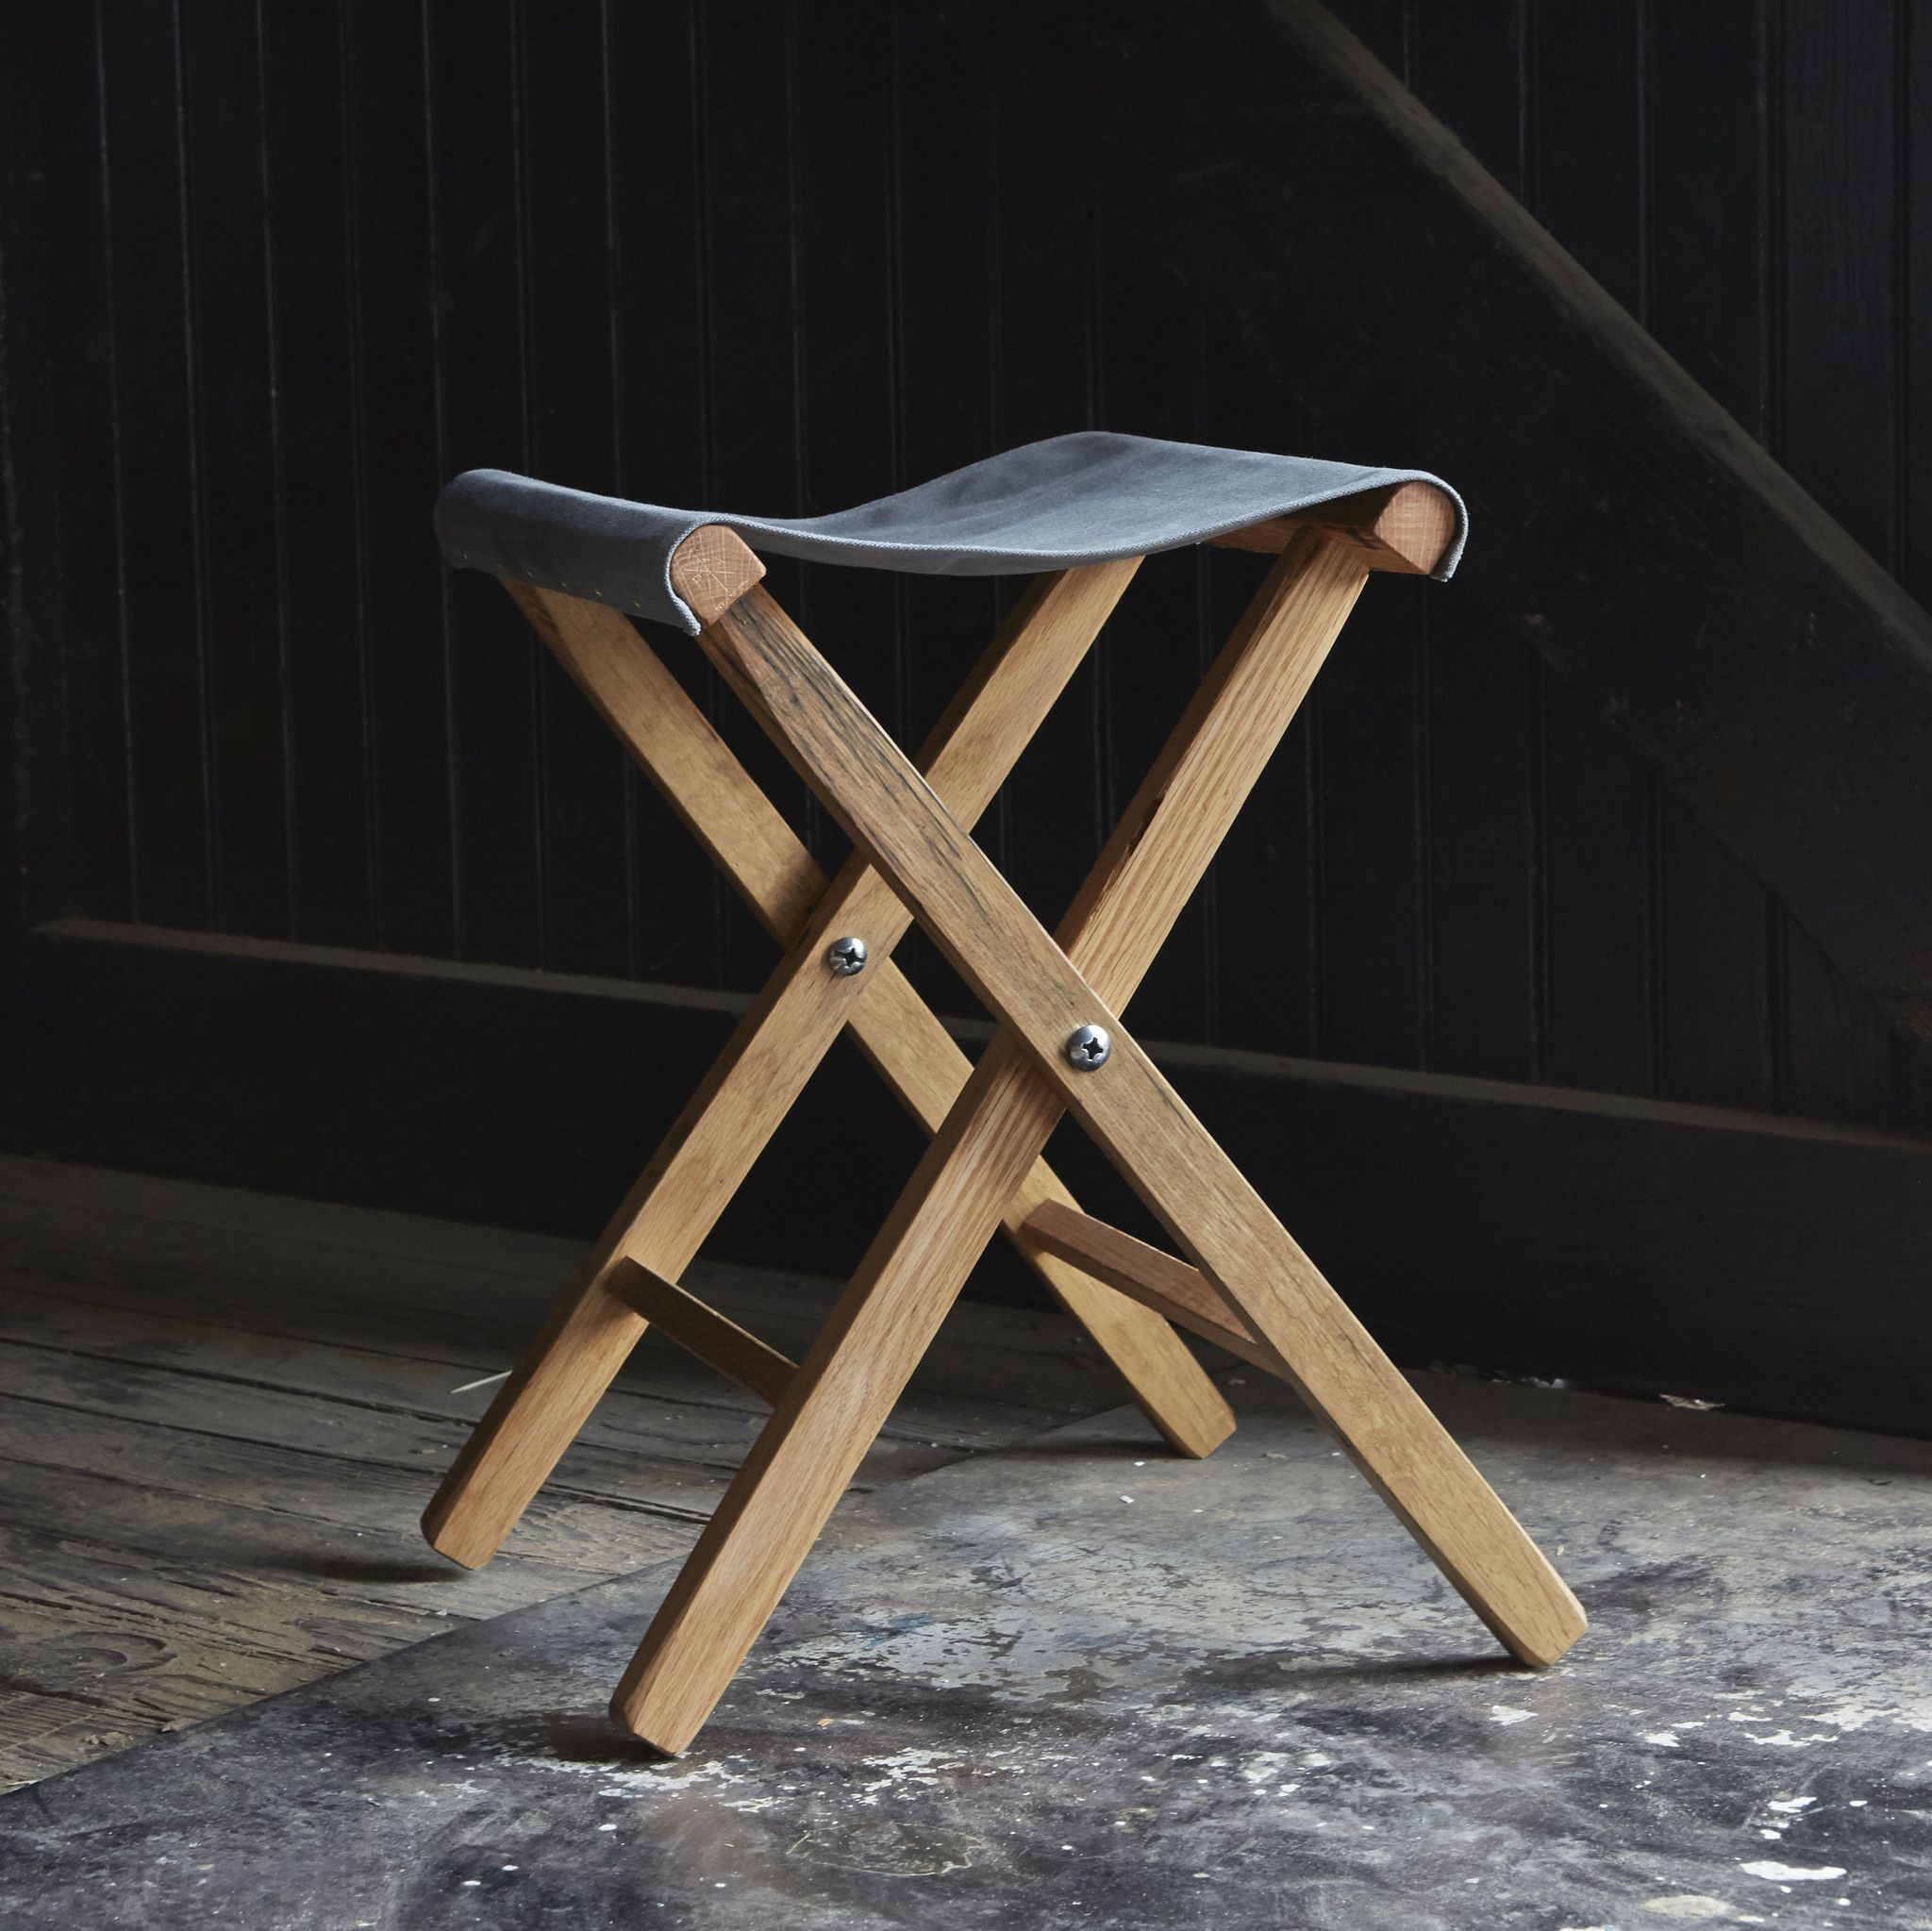 Our Lewis and Clark Expedition Stool is inspired by campfire